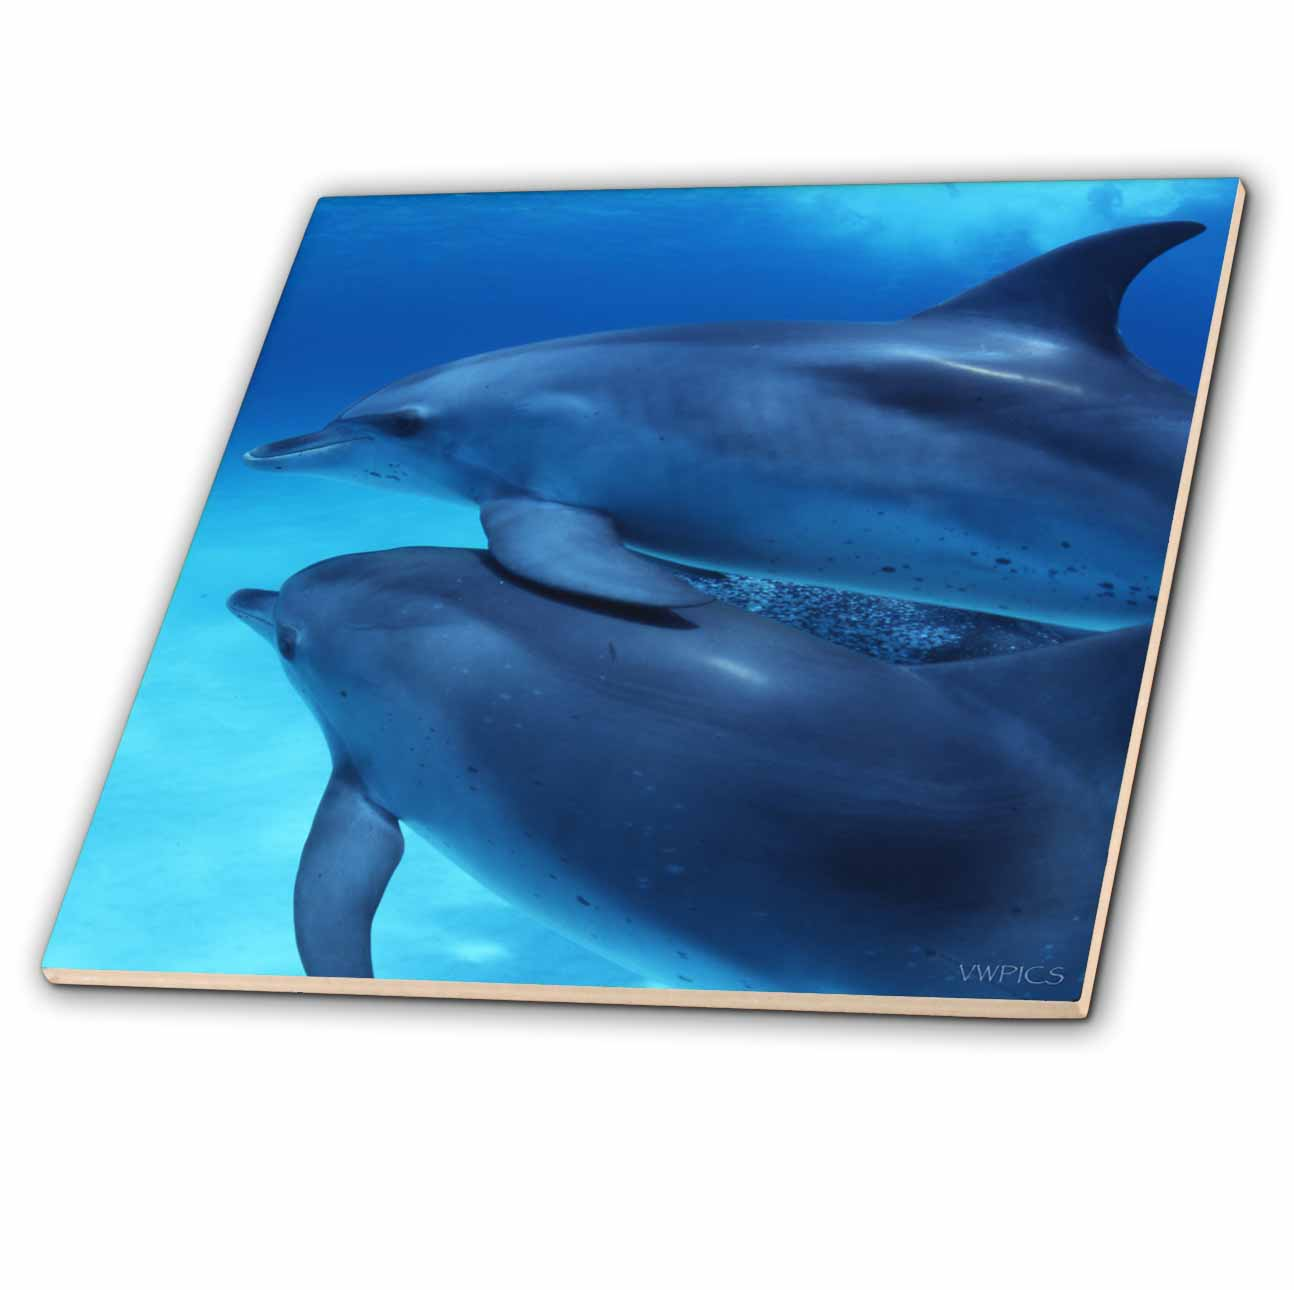 3dRose Two young dolphins, Stenella frontalis, swim together, Dophin Site, Bahamas - Ceramic Tile, 6-inch